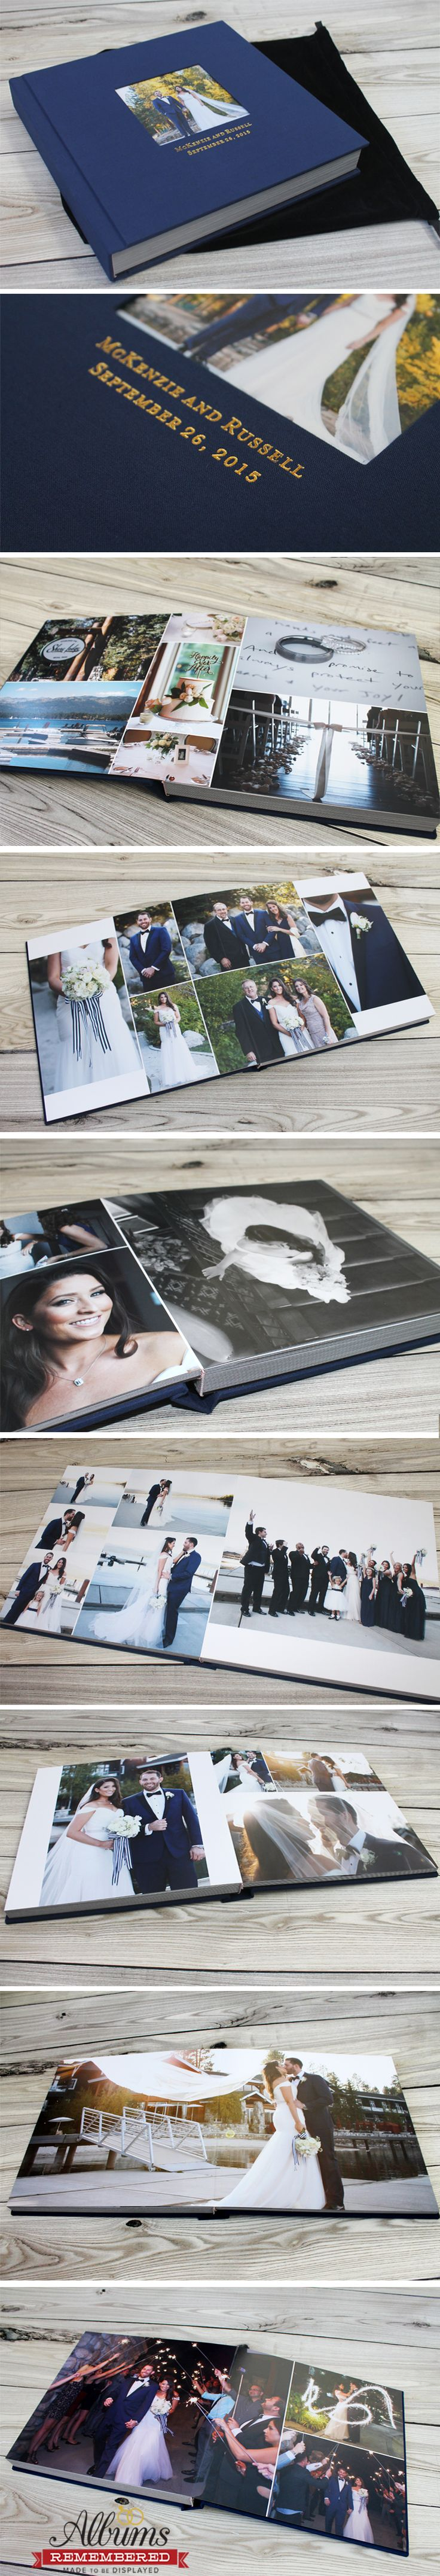 Create, Print, and Sell Professional-Quality Photo Books Free templates for photo books